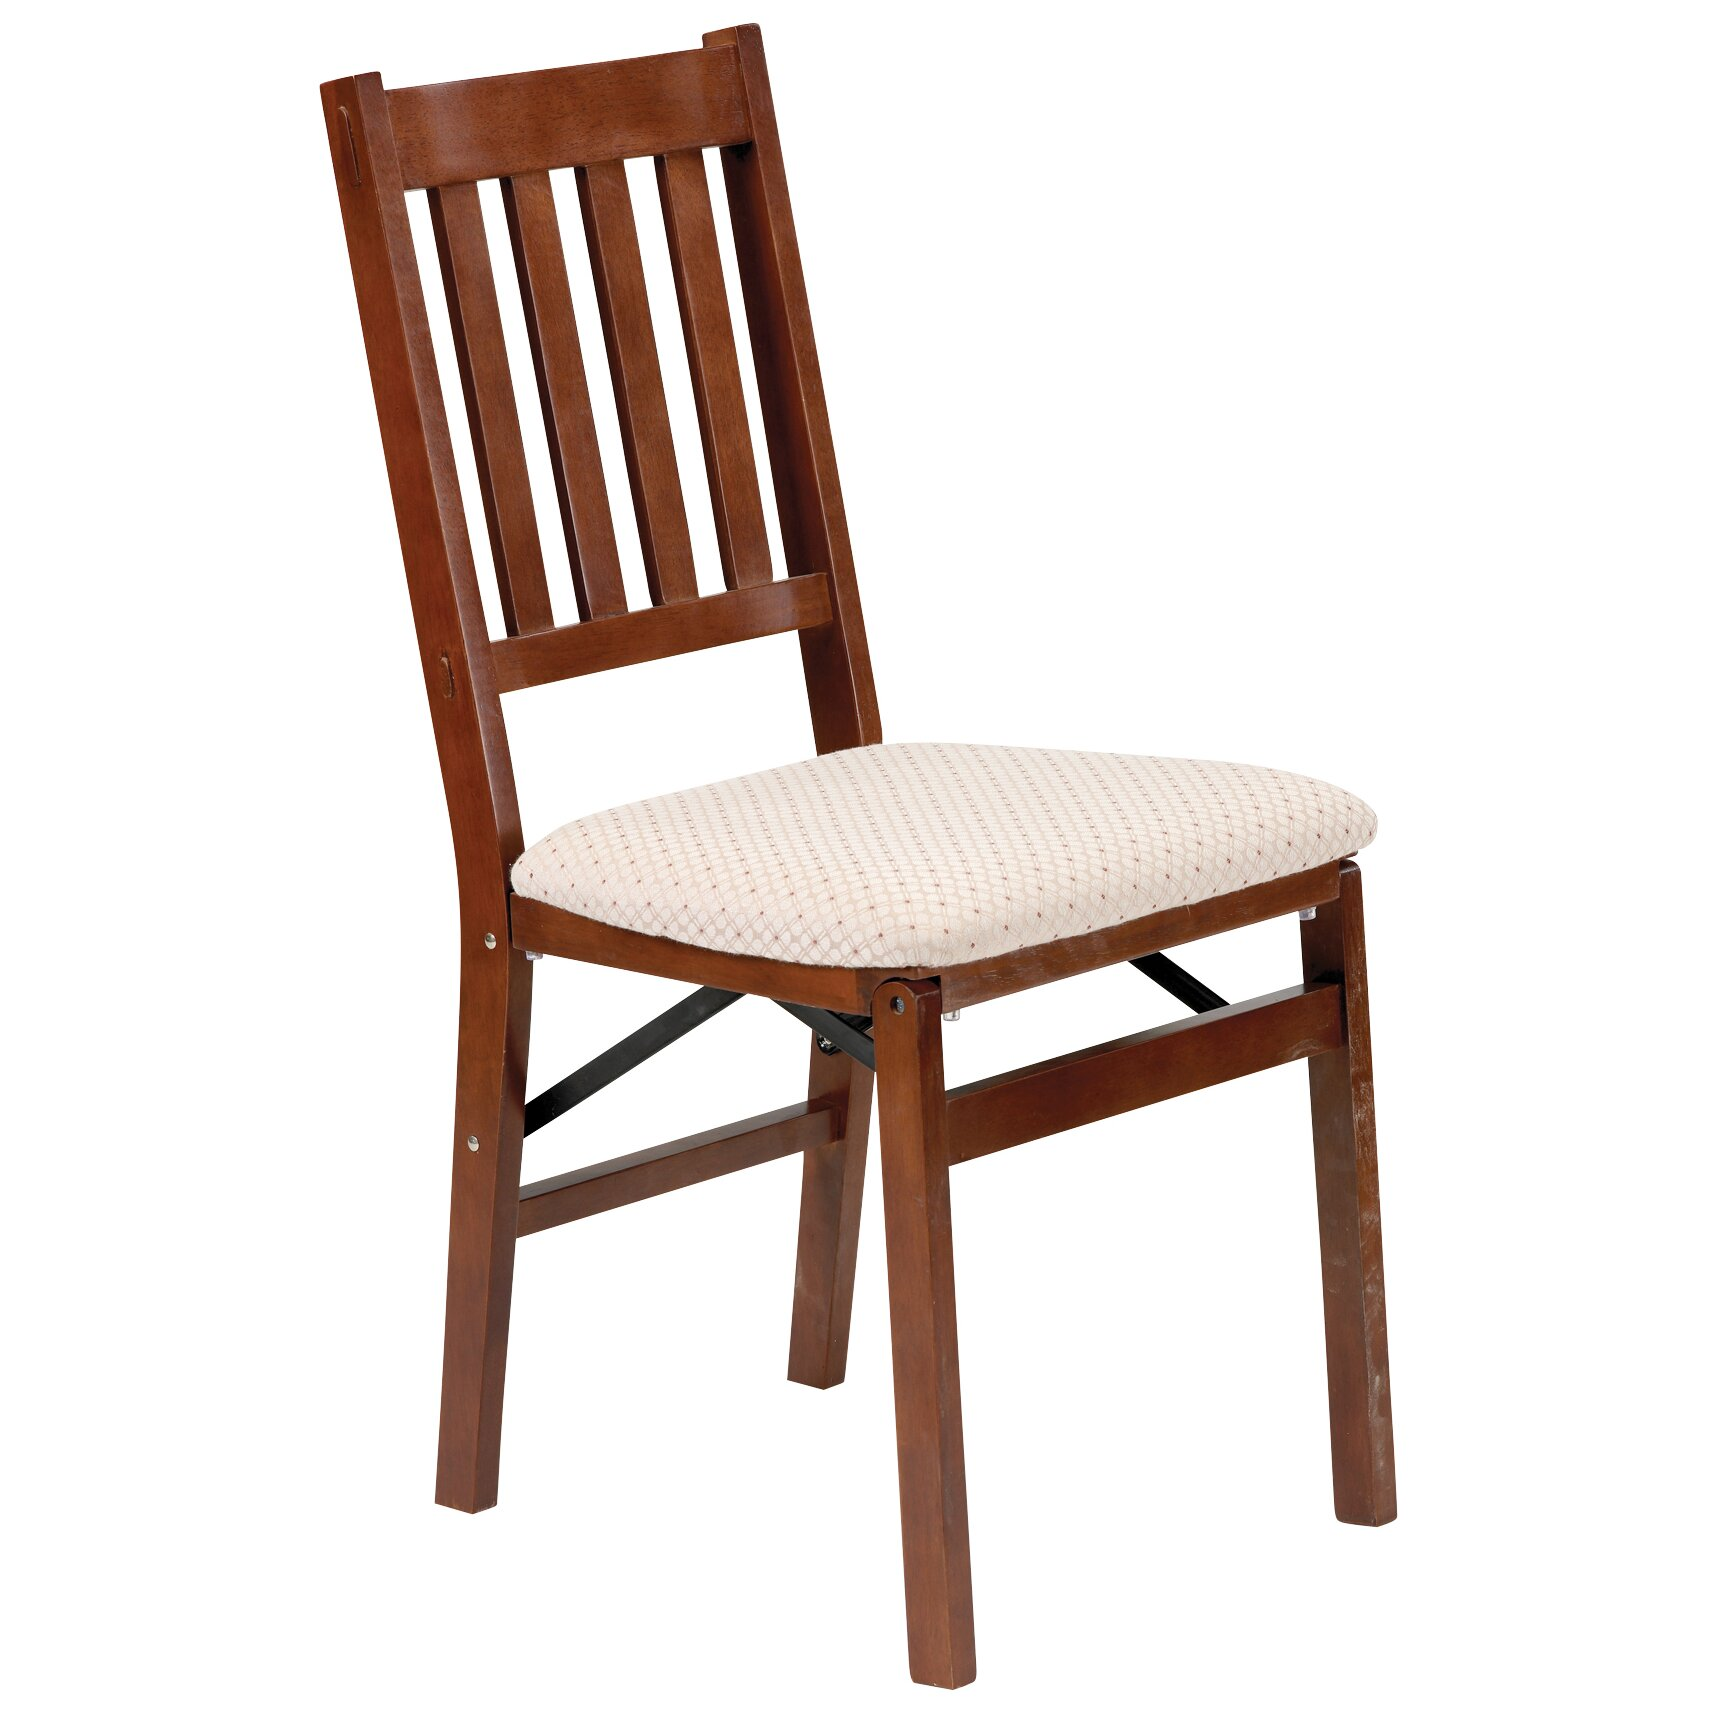 Stakmore arts and crafts chair reviews wayfair for Furniture courier